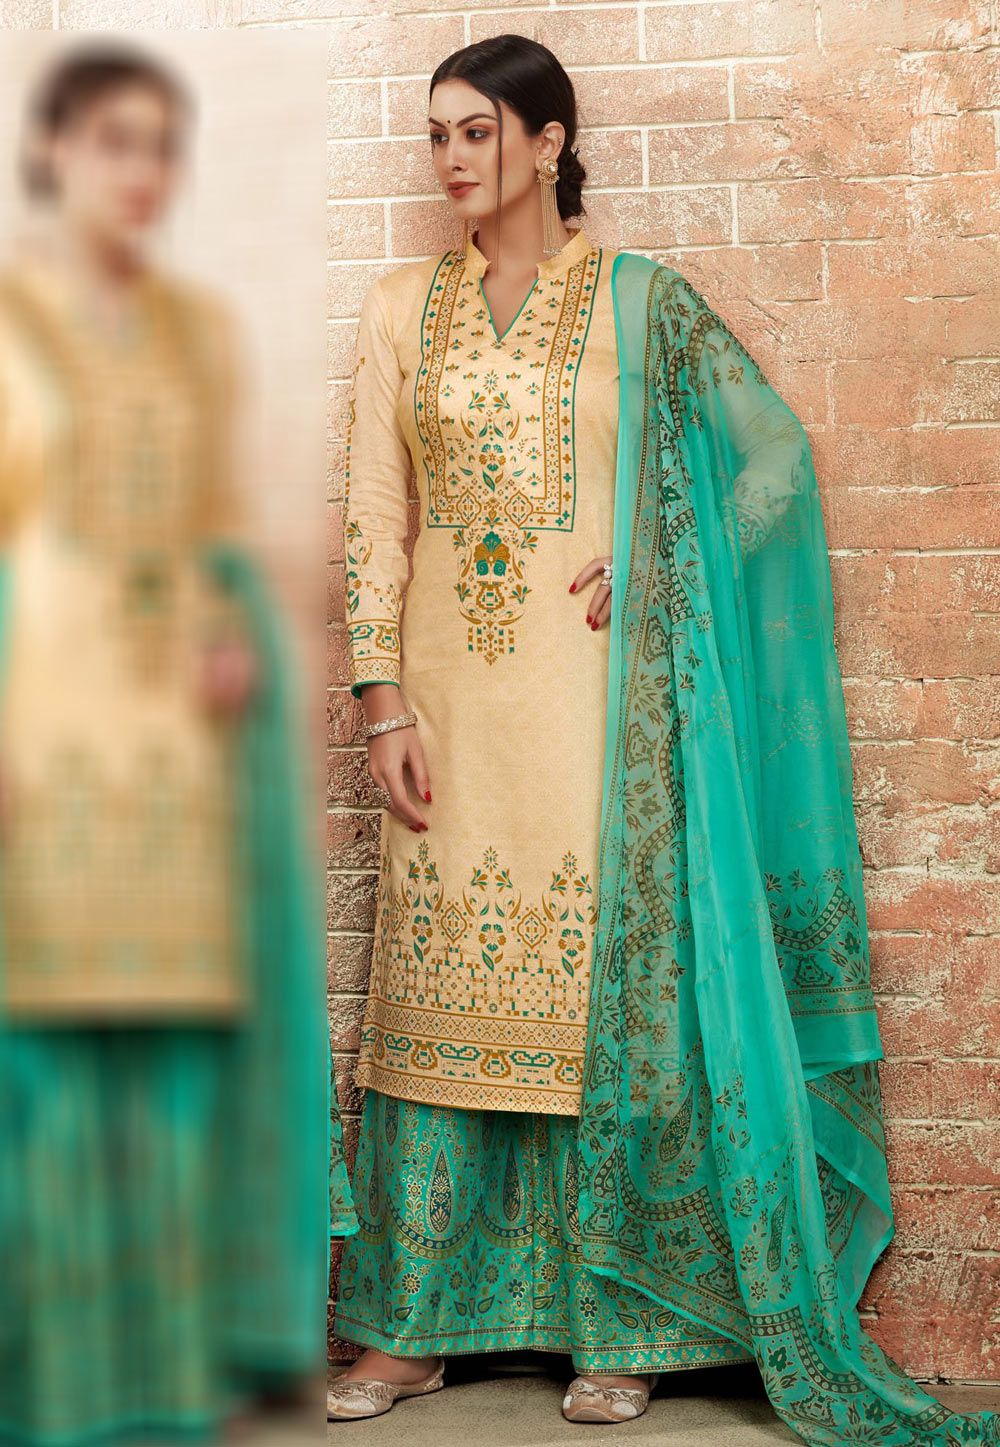 39aa292e19 Buy Cream Palazzo Suit 163324 online at lowest price from huge collection  of salwar kameez at Indianclothstore.com.